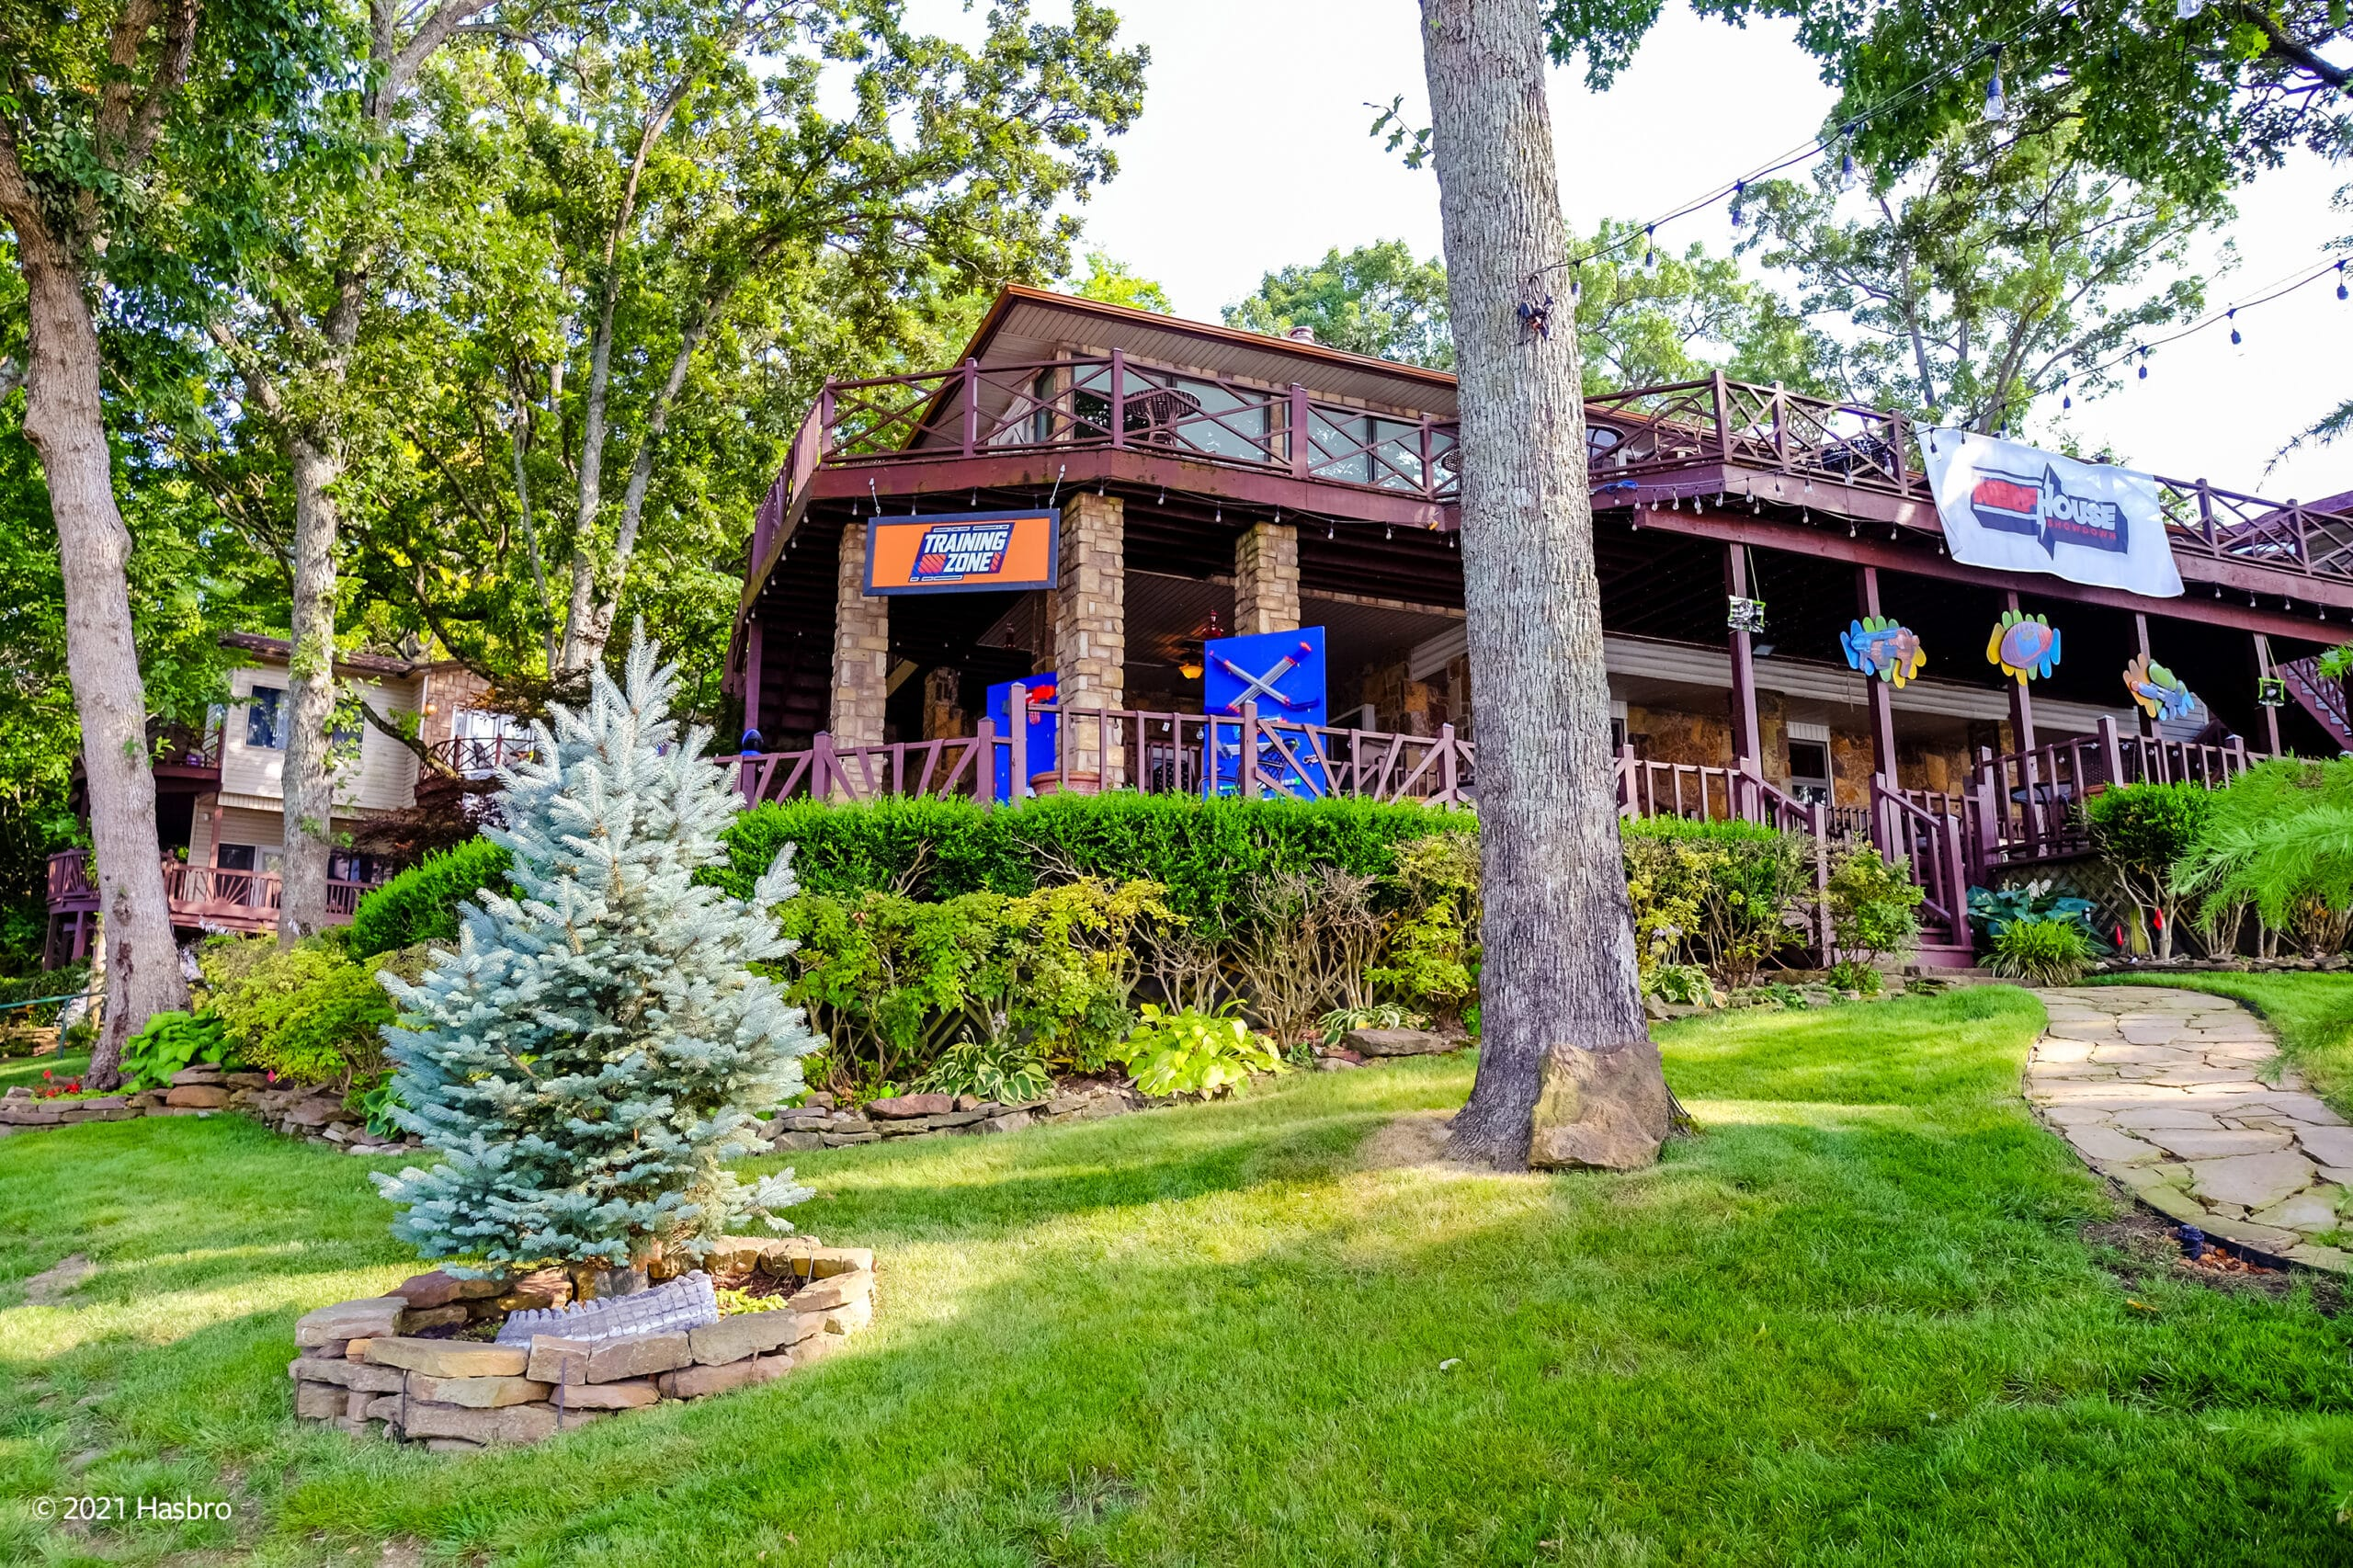 Hasbro and Vrbo are renting out a Nerf-themed lake house to one lucky family 17